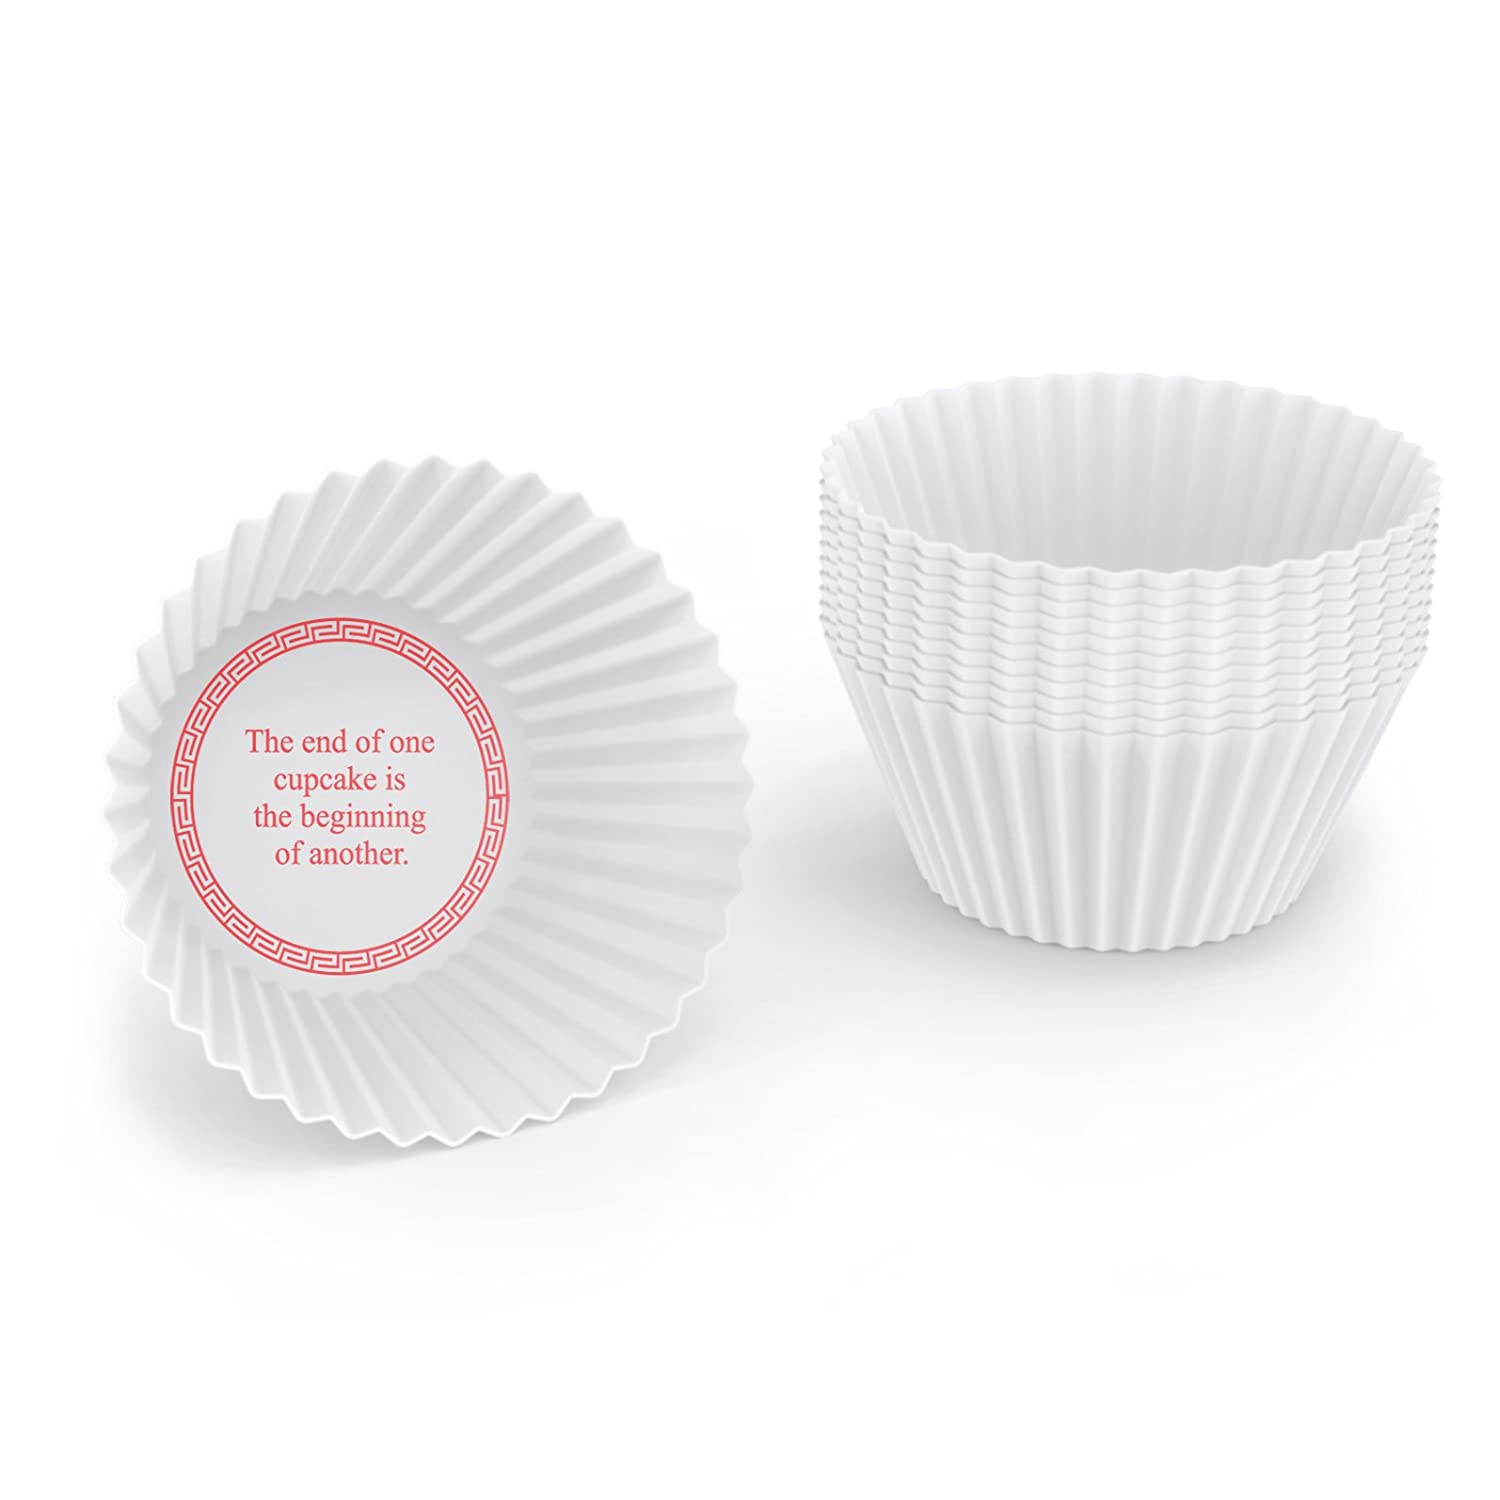 Fred FORTUNE CAKES Baking Cups, Set of 12 5132189